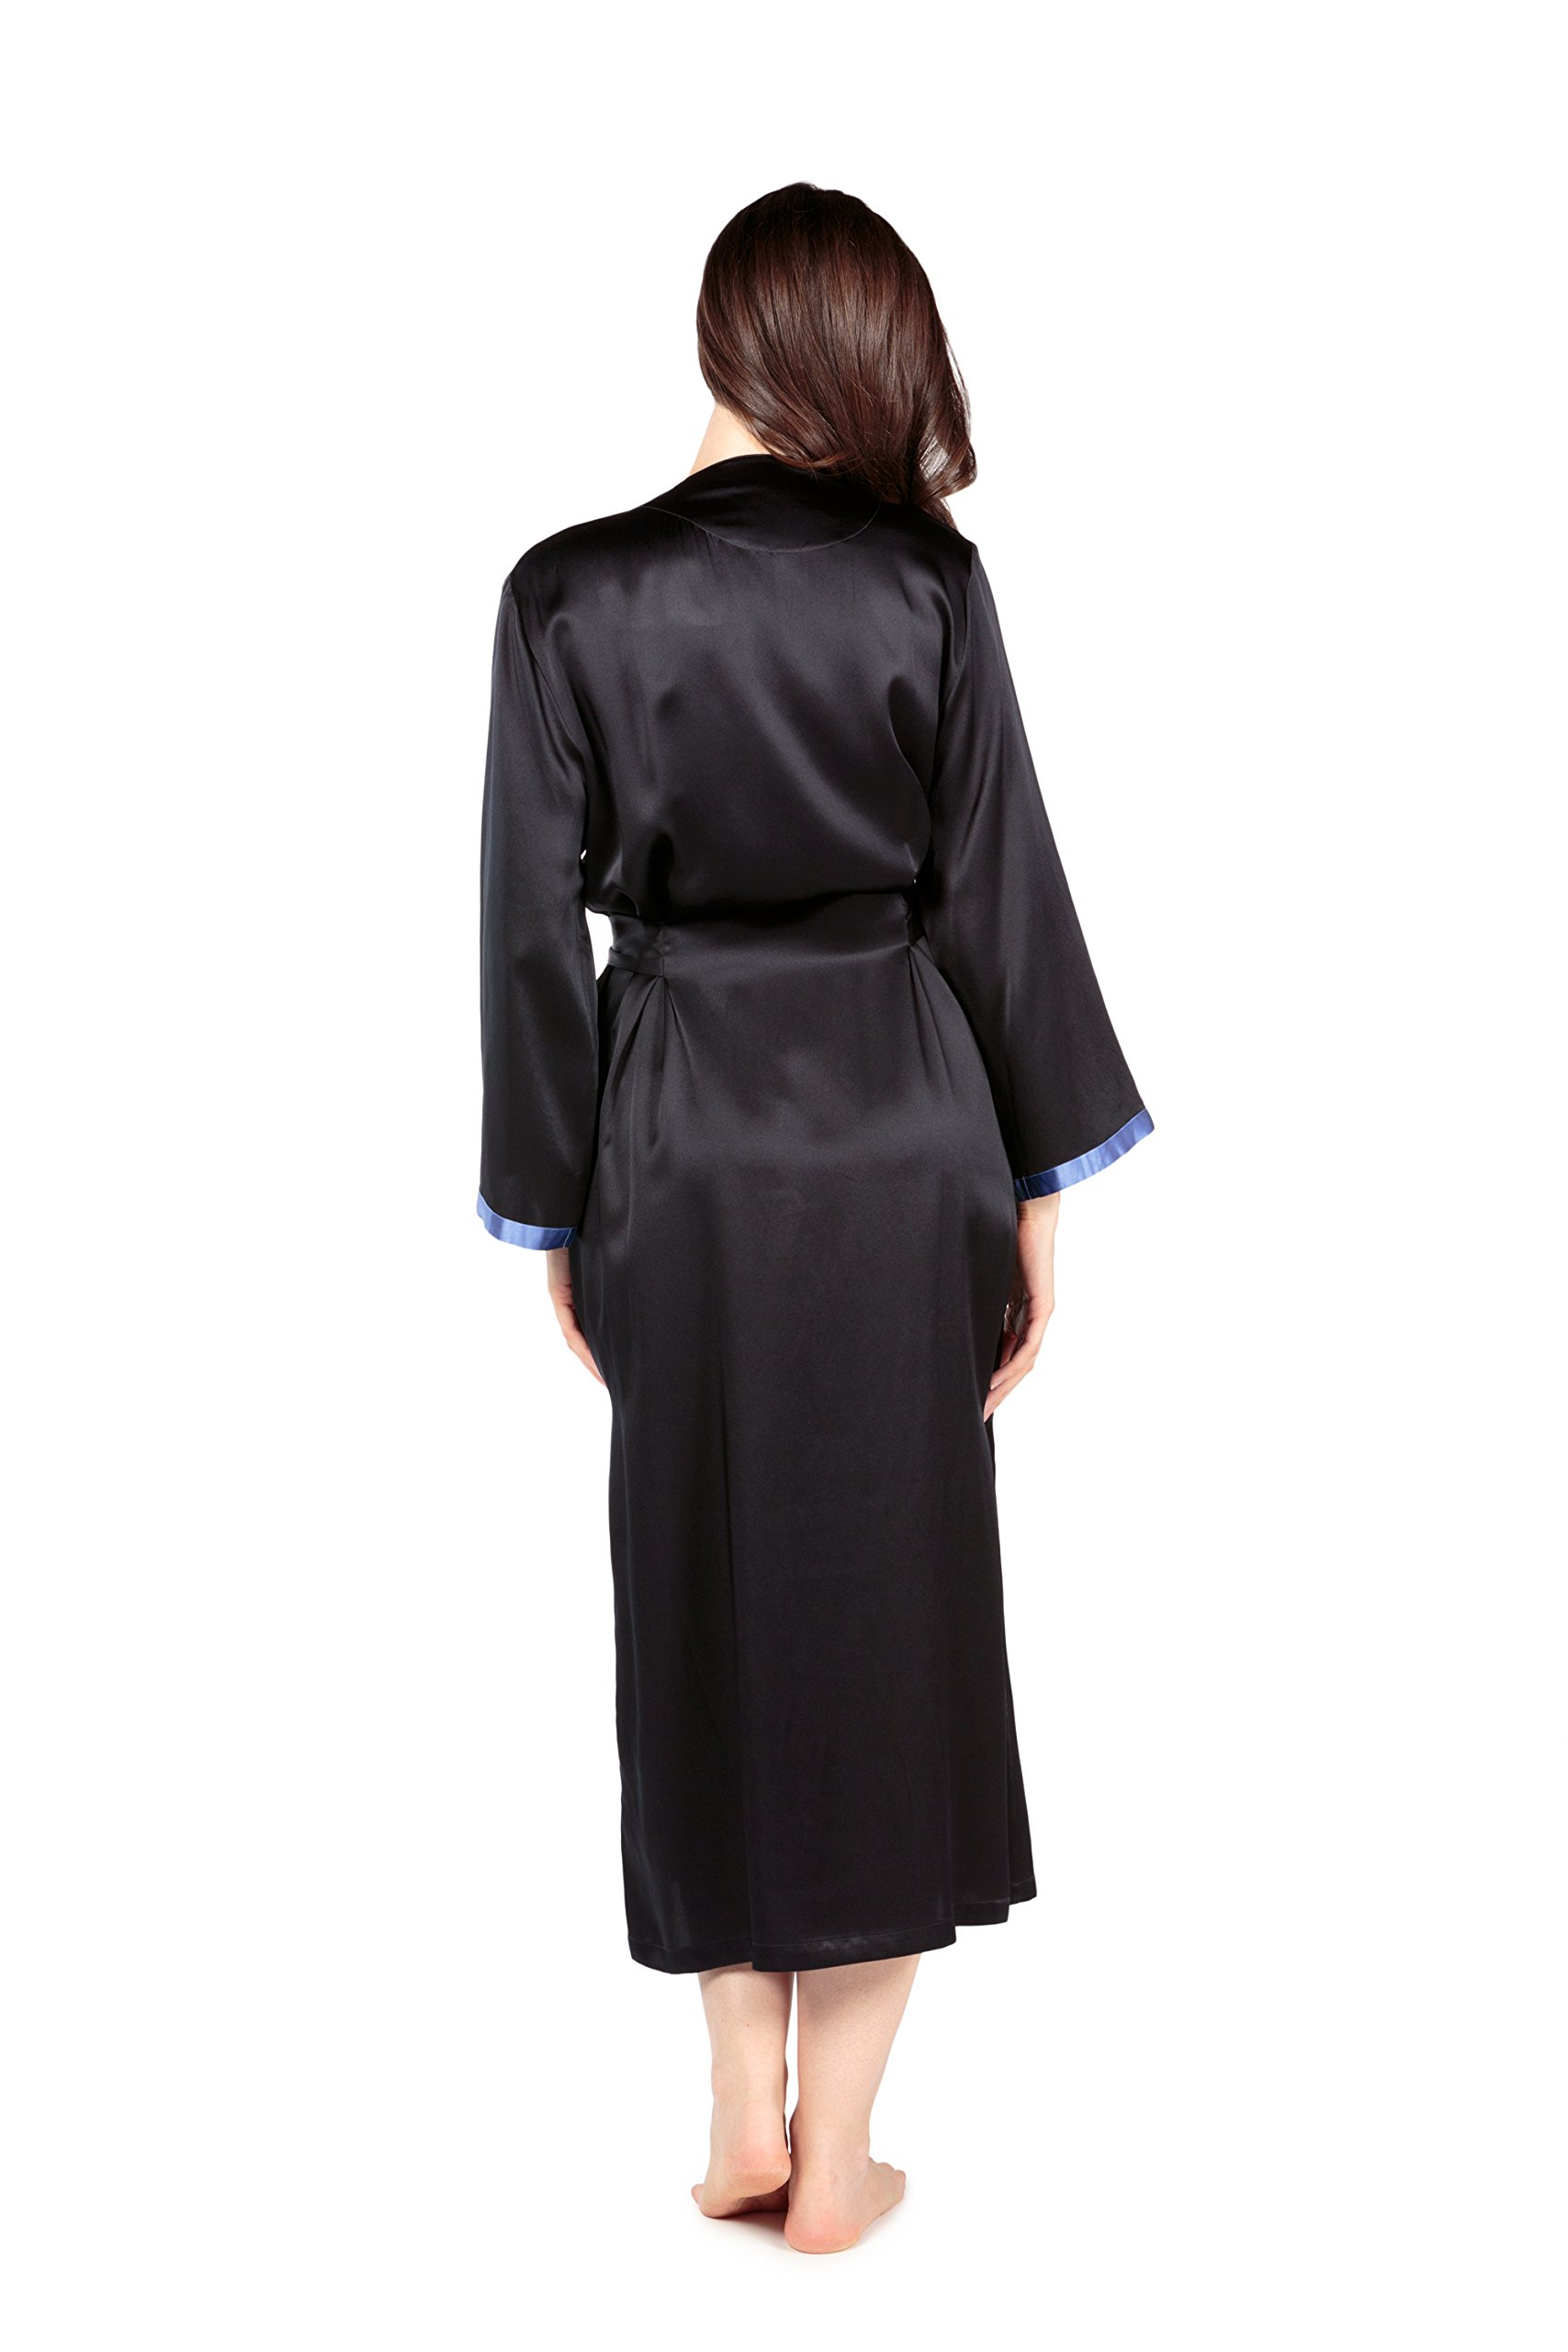 Women's Luxury Long Silk Bathrobe - Sleepwear Robe by TexereSilk (Beautibliss, Black, Large/X-Large) Popular Gifts for Women WS0102-BLK-LXL by TexereSilk (Image #3)